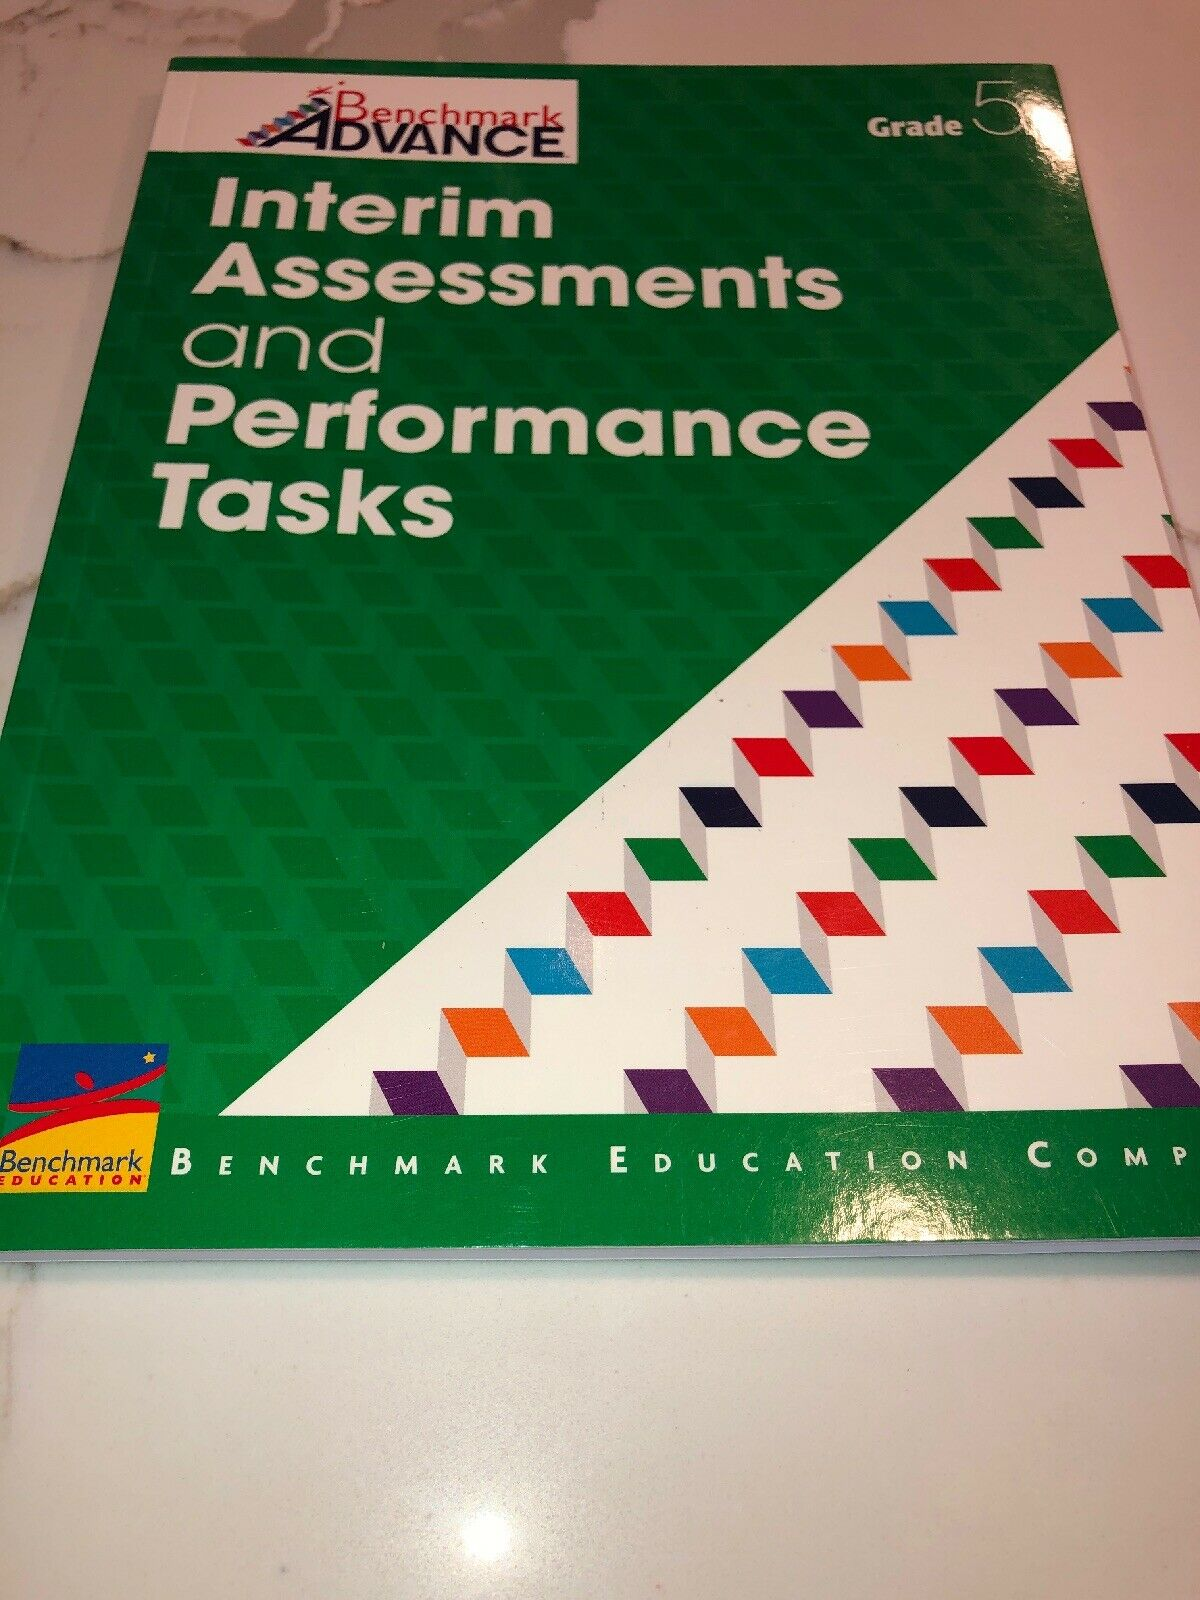 ISBN 9781490033976 product image for Bencmark Advance Grade 5 Interim Assessments And Performance Tasks 1490033971 | upcitemdb.com